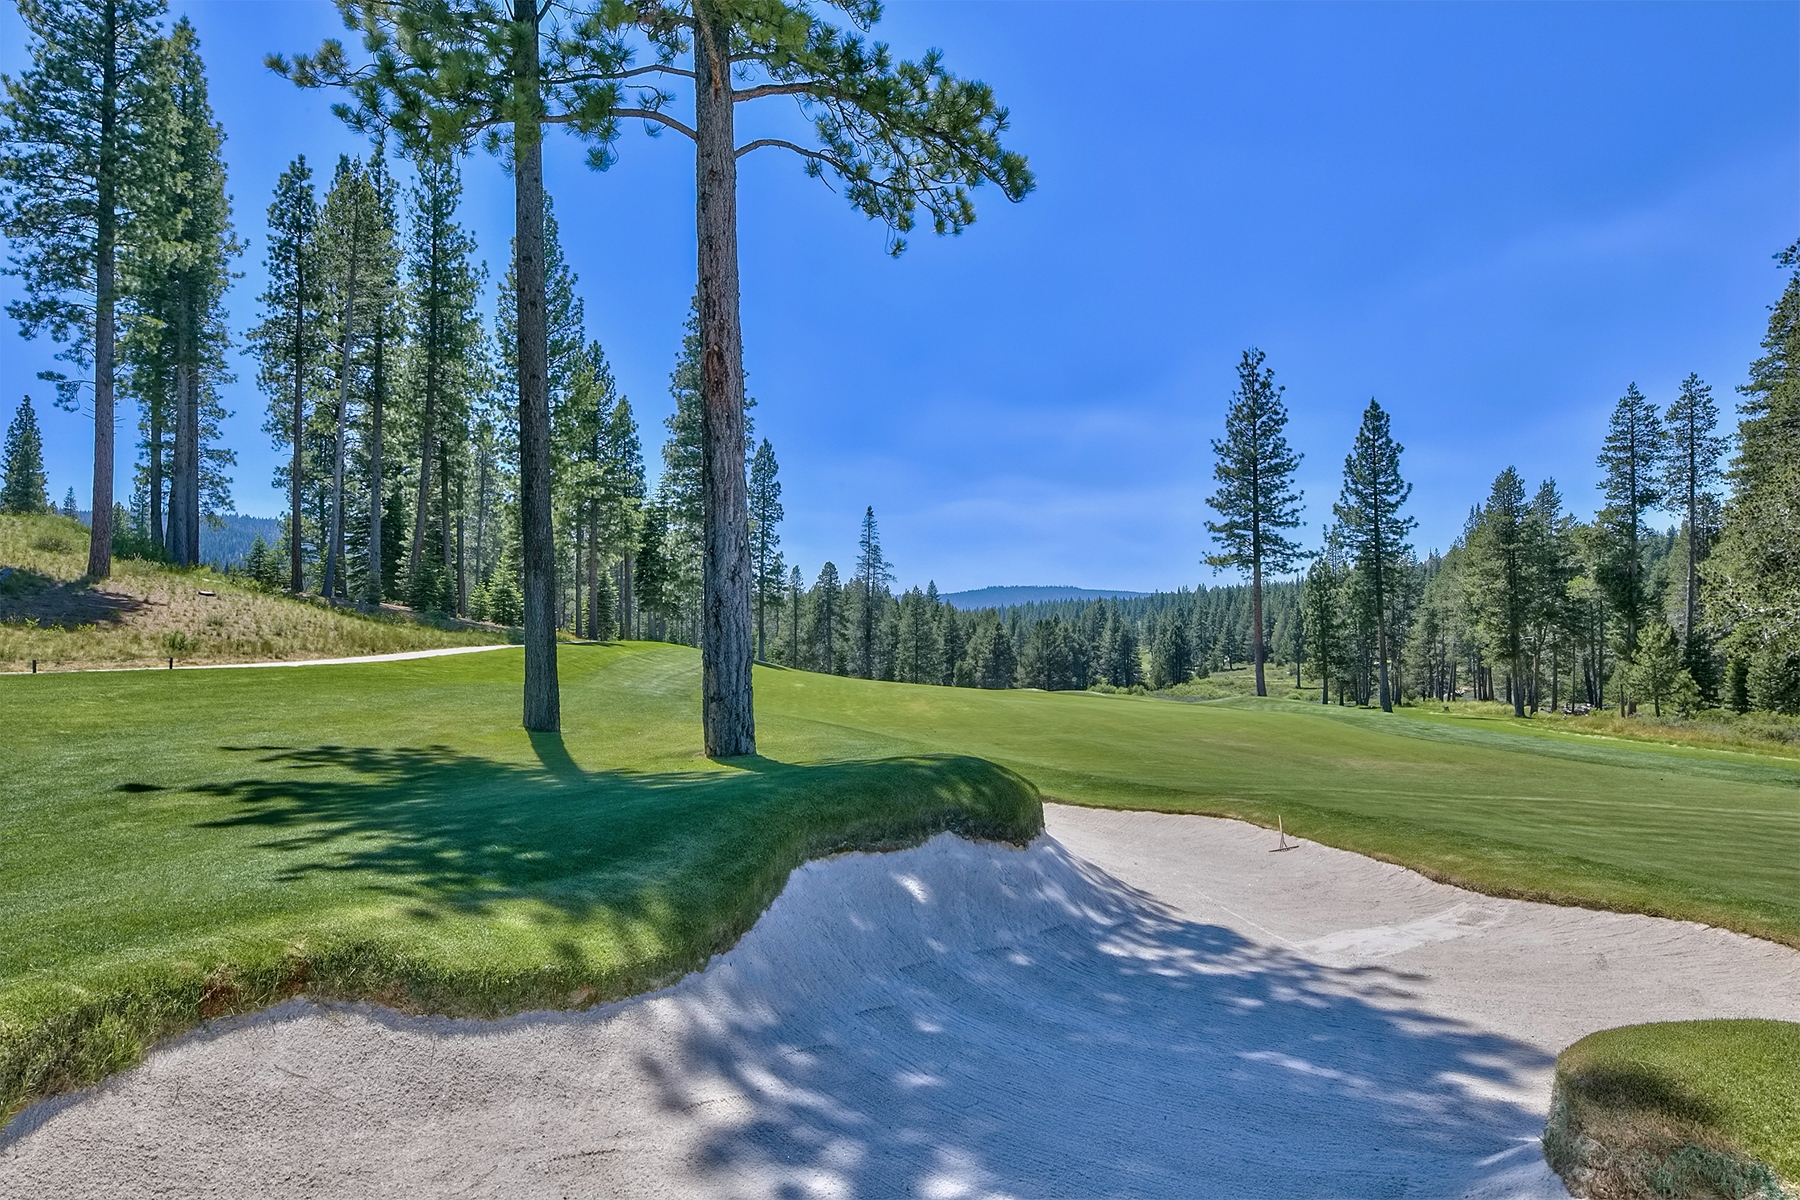 Additional photo for property listing at 8125 Villandry Drive, Truckee, CA 96161 8125 Villandry Drive Truckee, California 96161 United States